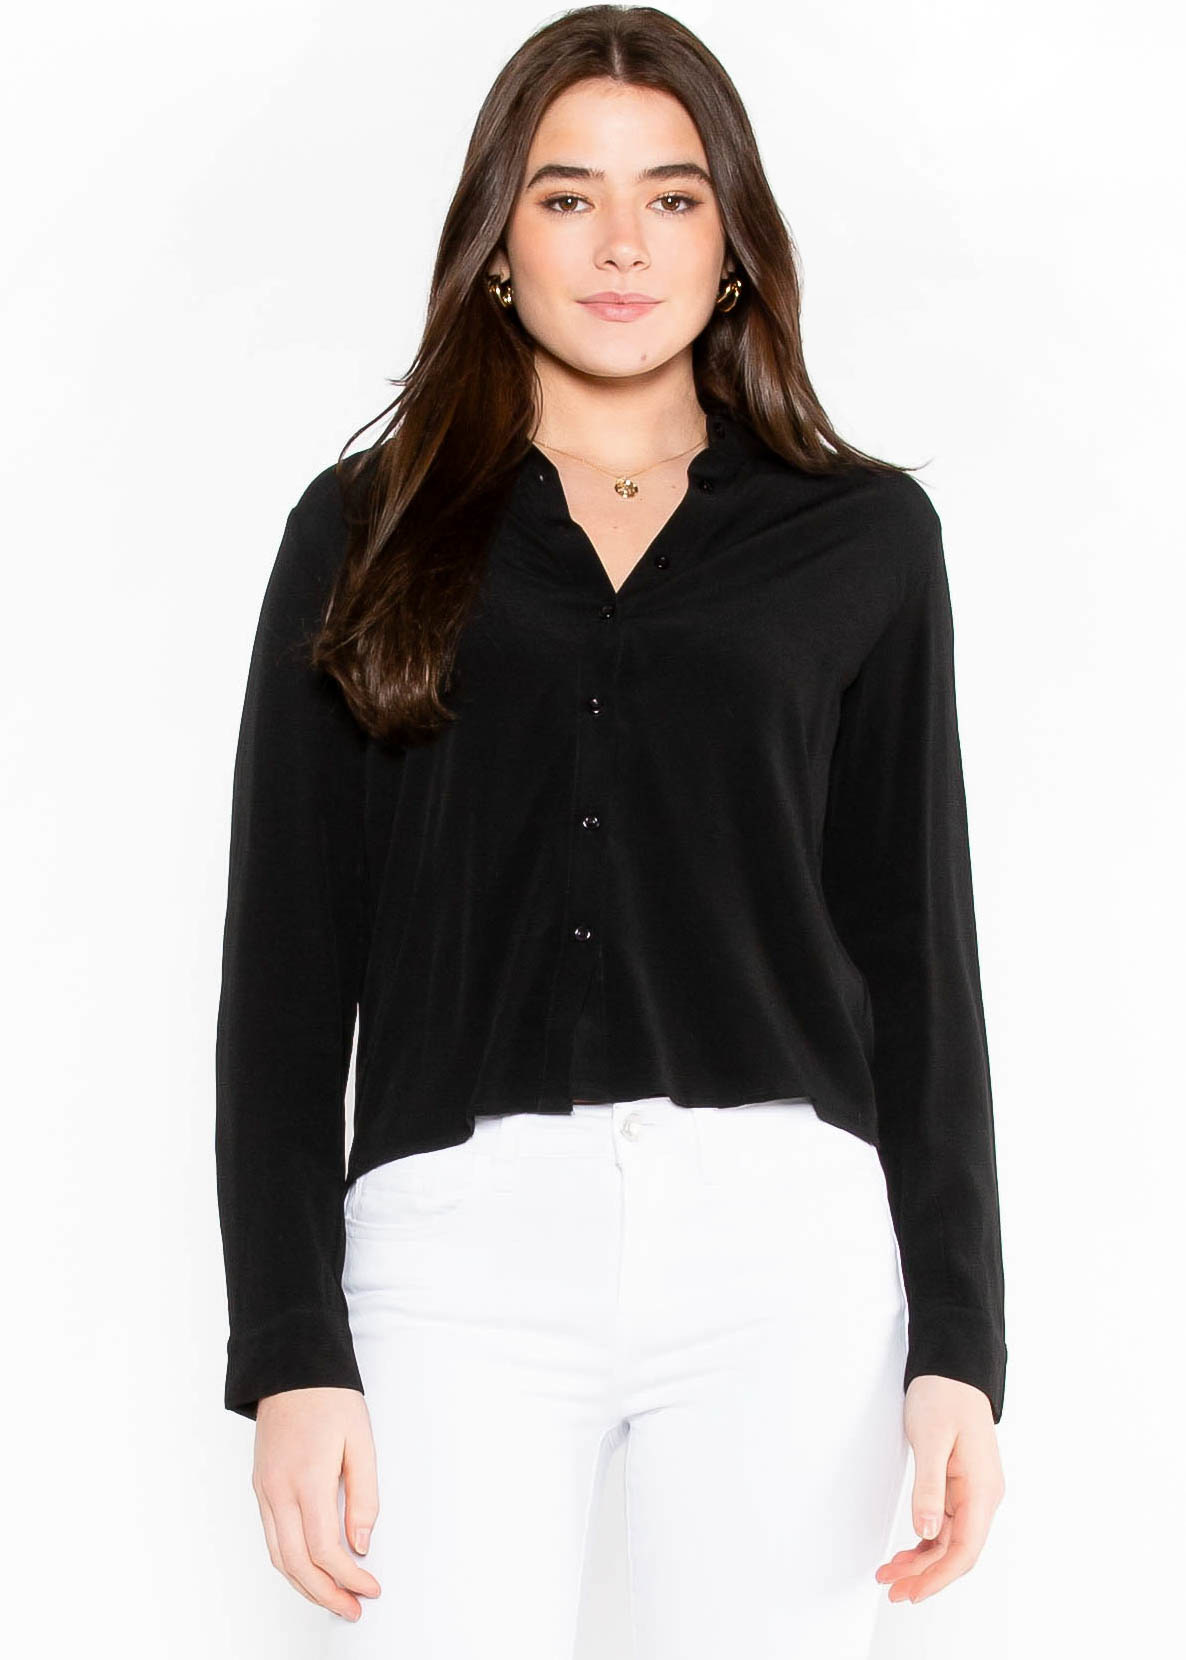 TIME NOT WASTED BLOUSE - BLACK